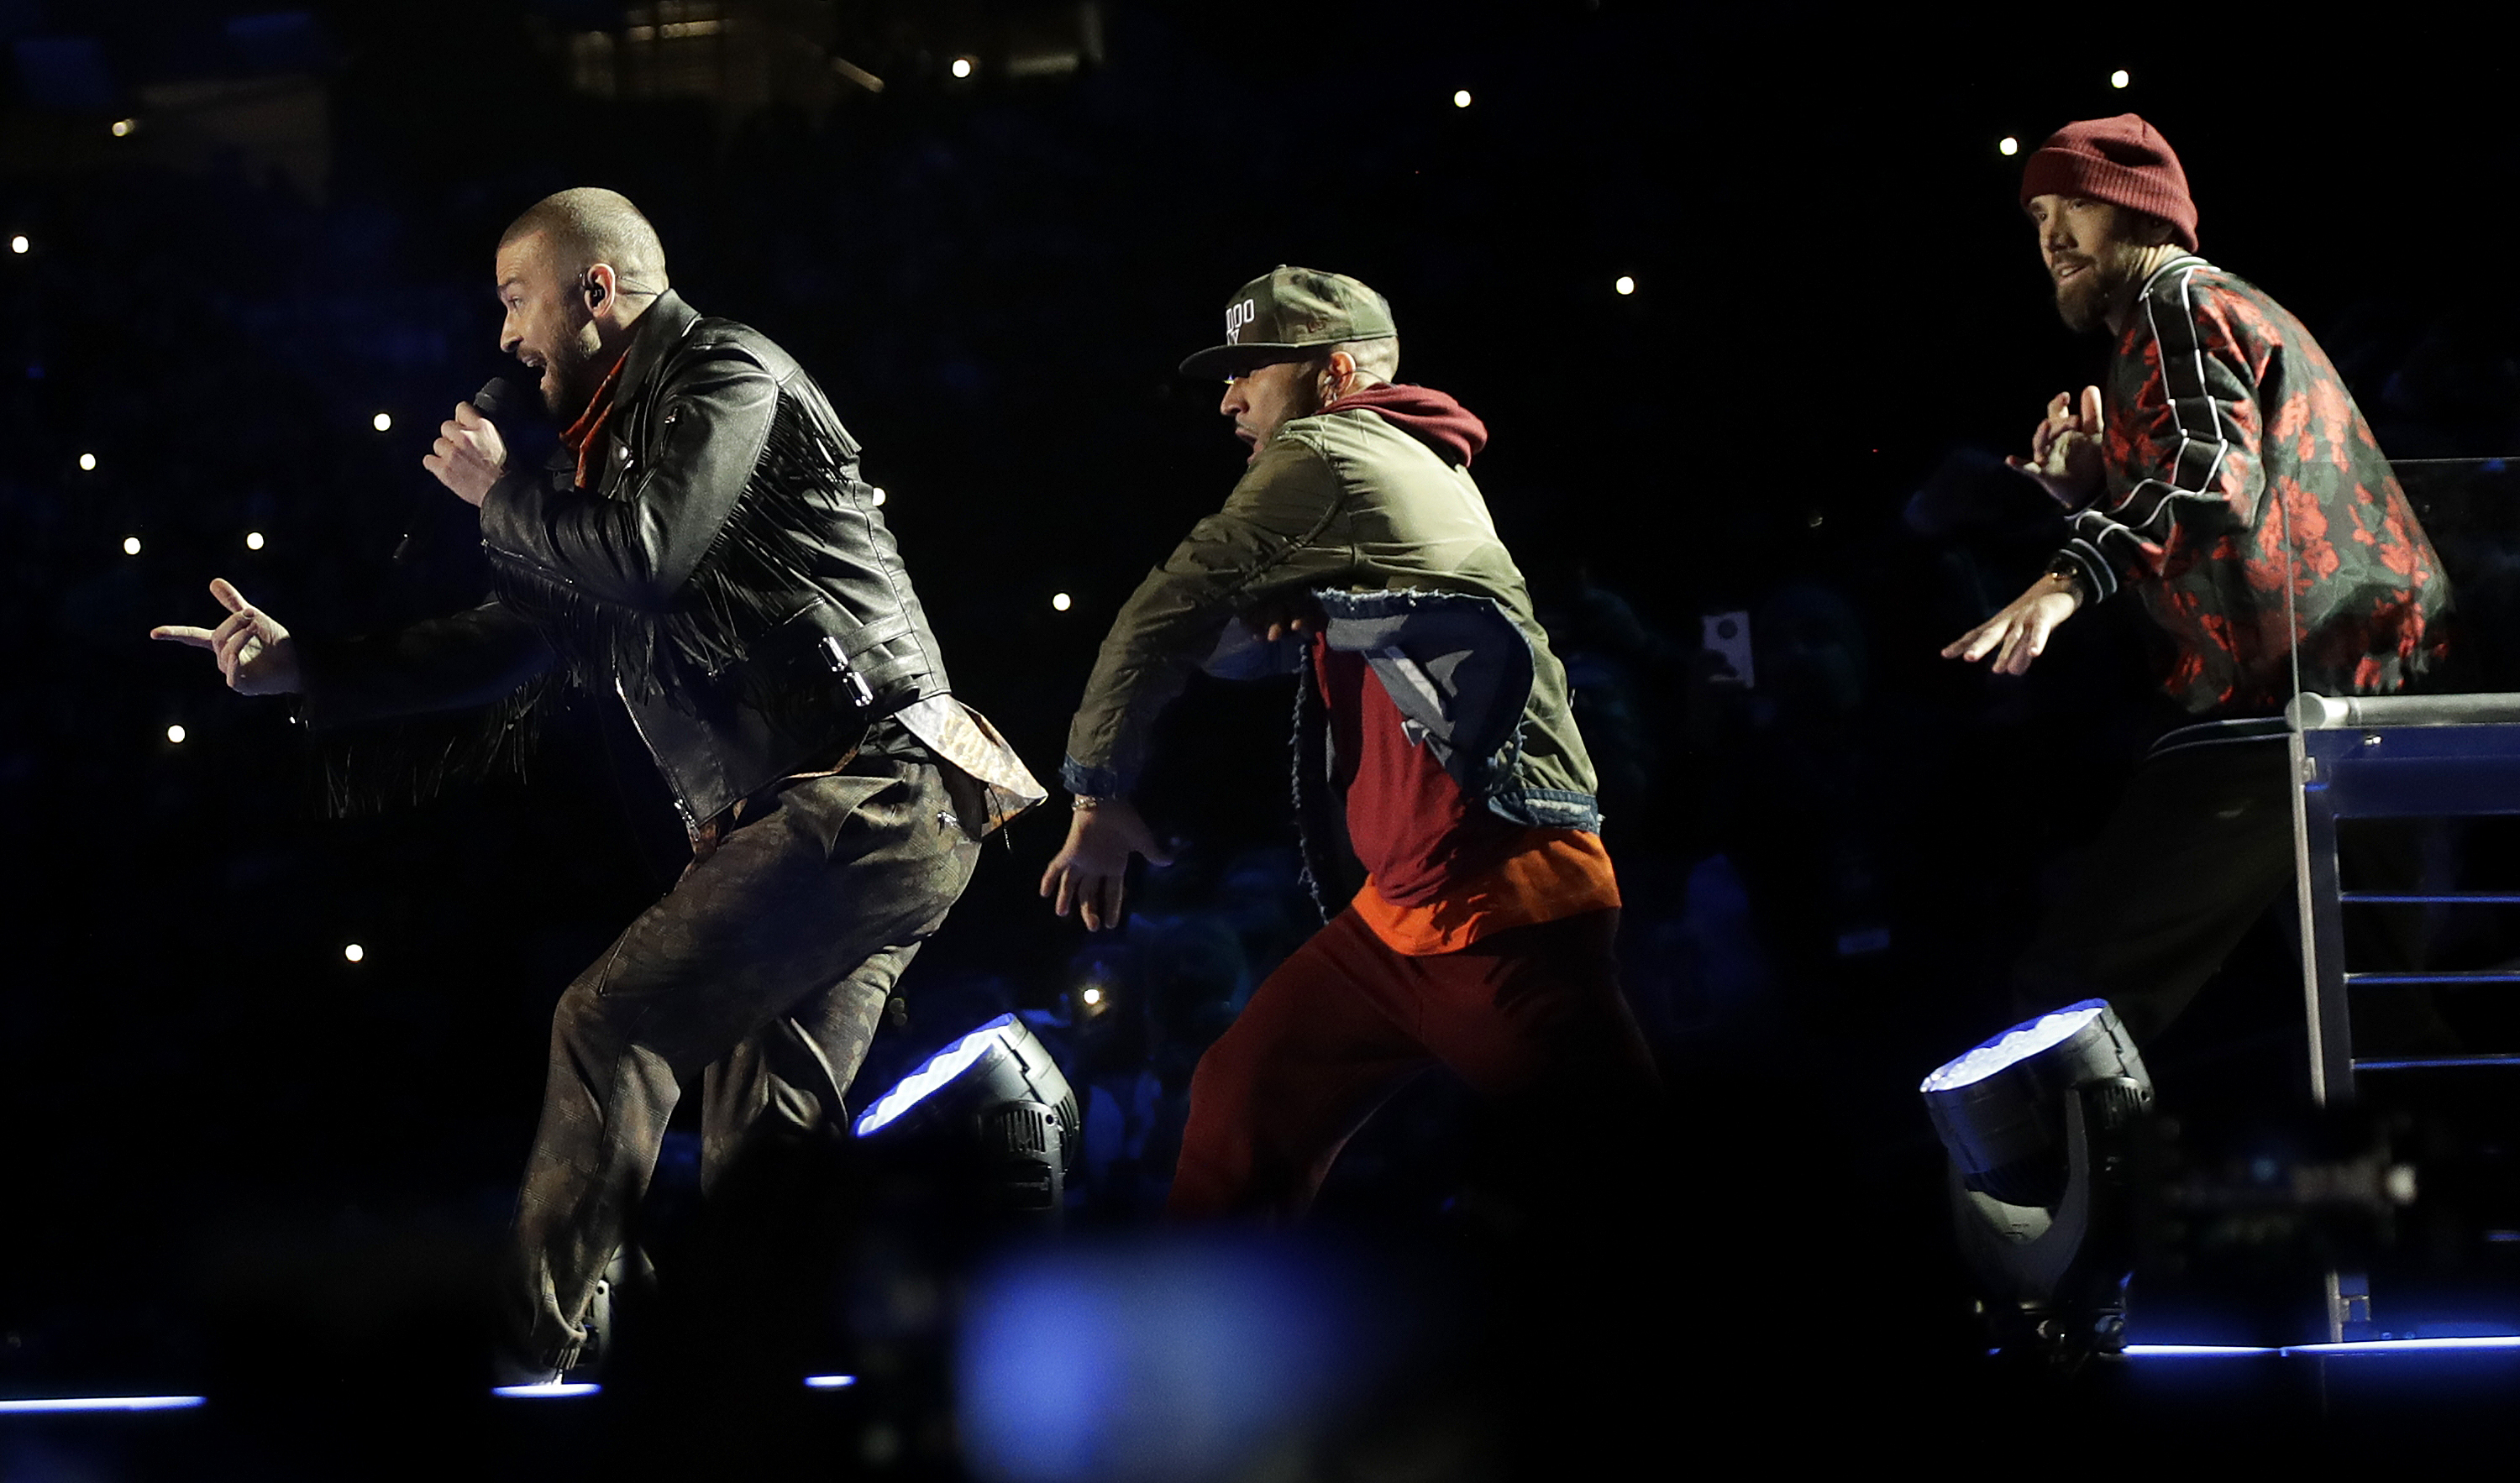 "<div class=""meta image-caption""><div class=""origin-logo origin-image ap""><span>AP</span></div><span class=""caption-text"">Justin Timberlake, left, performs during halftime of the NFL Super Bowl 52 football game between the Philadelphia Eagles and the New England Patriots Sunday, Feb. 4, 2018. (AP Photo/Eric Gay, Eric Slocum)</span></div>"